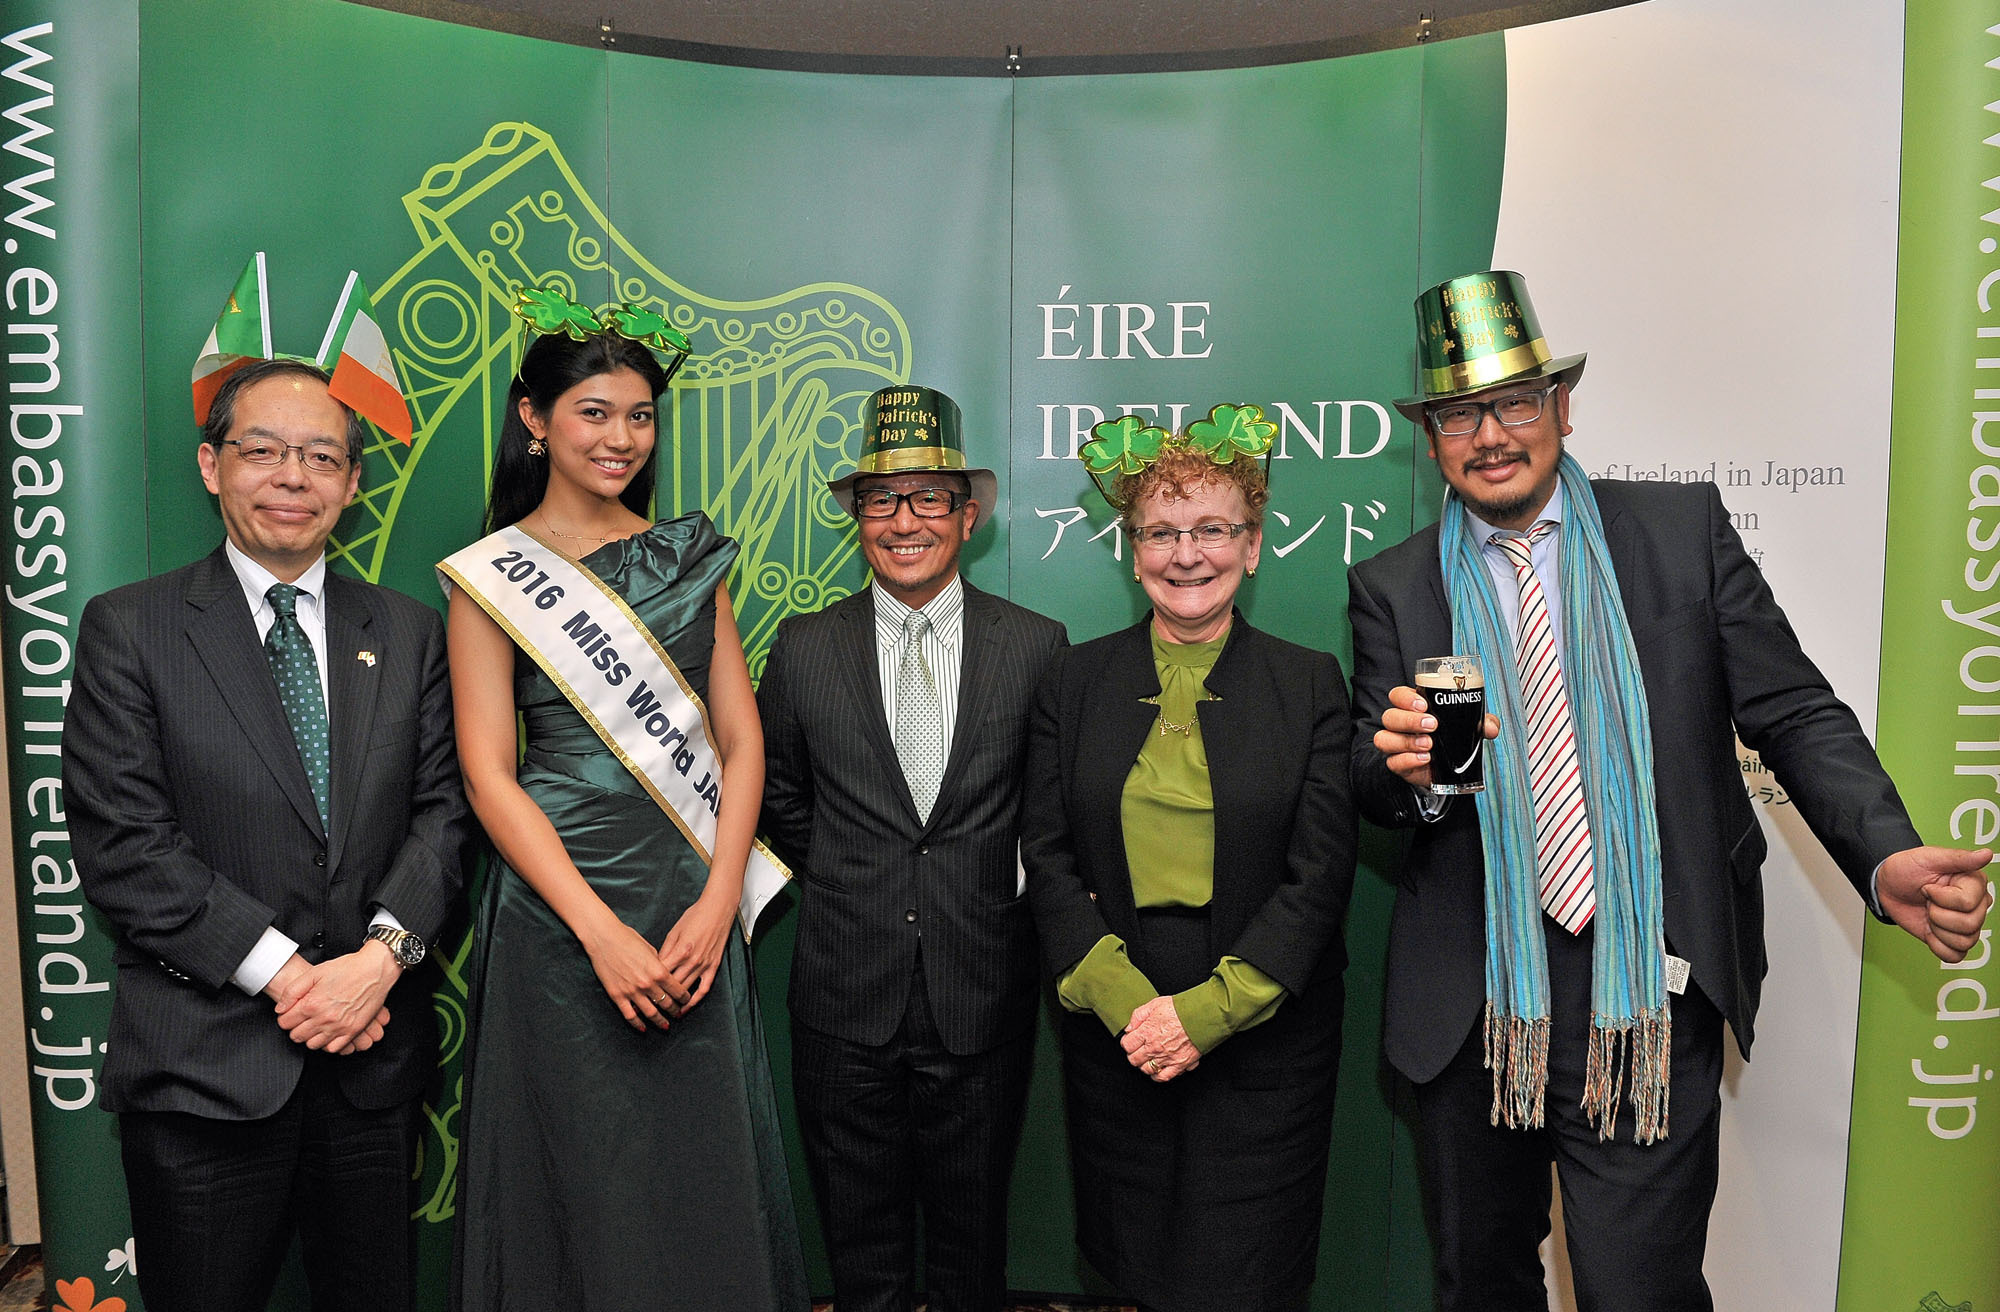 Ireland's Ambassador Anne Barrington (second from right) poses with (from left), Ireland Japan Chamber of Commerce Vice President and Chairperson of the I Love Ireland Festival 2017 Committee Yoshihiro Tsuchiya; Miss World Japan 2016 Priyanka Yoshikawa; La Ditta Ltd. Senior Vice President of Operations Taka Daiya; and La Ditta Ltd. Founder and Managing Director Harry Hakuei Kosato during a press conference at the Japan Press Center on Feb. 22 announcing St. Patrick's Day in Japan 2017, which will see 14 parades take place across Japan. | YOSHIAKI MIURA